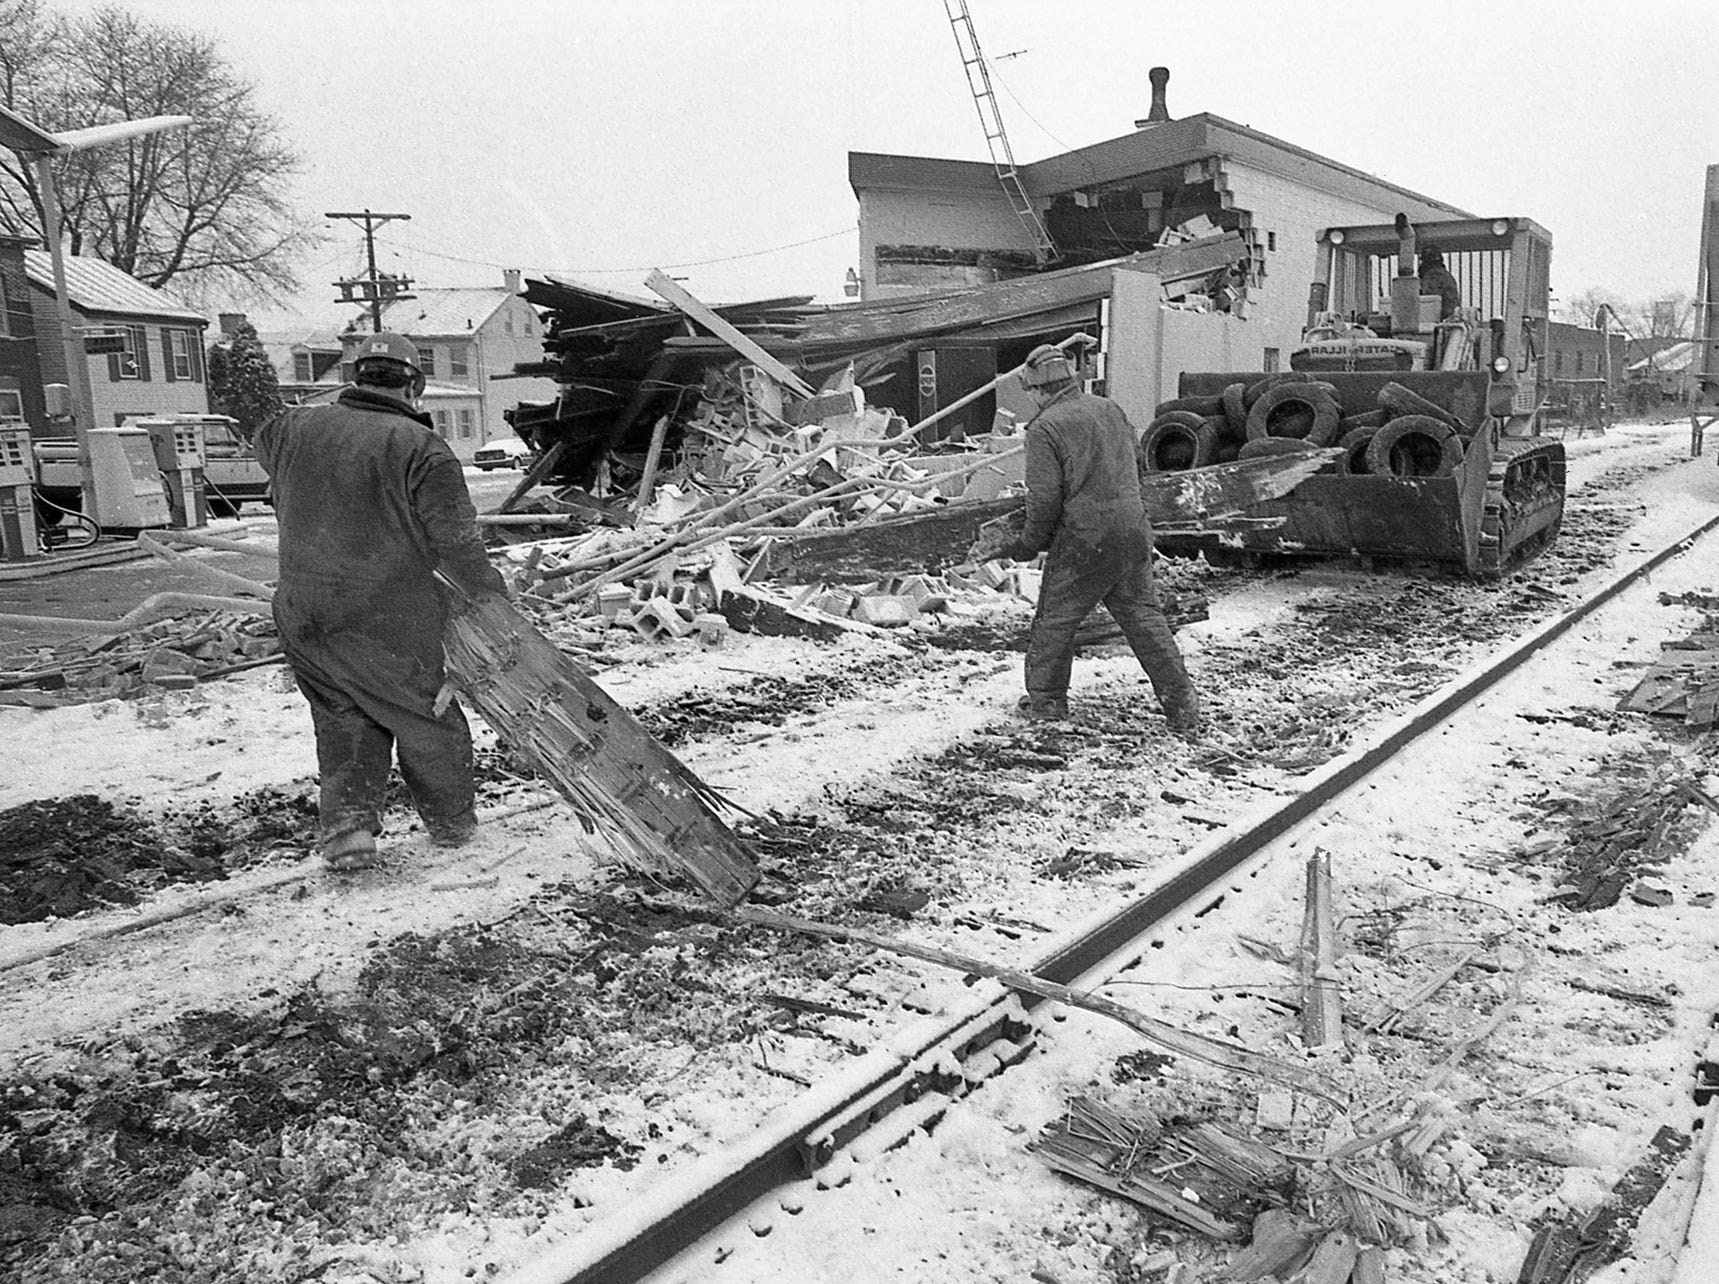 Debris is pulled off the tracks. In December 1989, a train left the tracks near Arch Street and North George Street in York and destroyed Ellis Service.